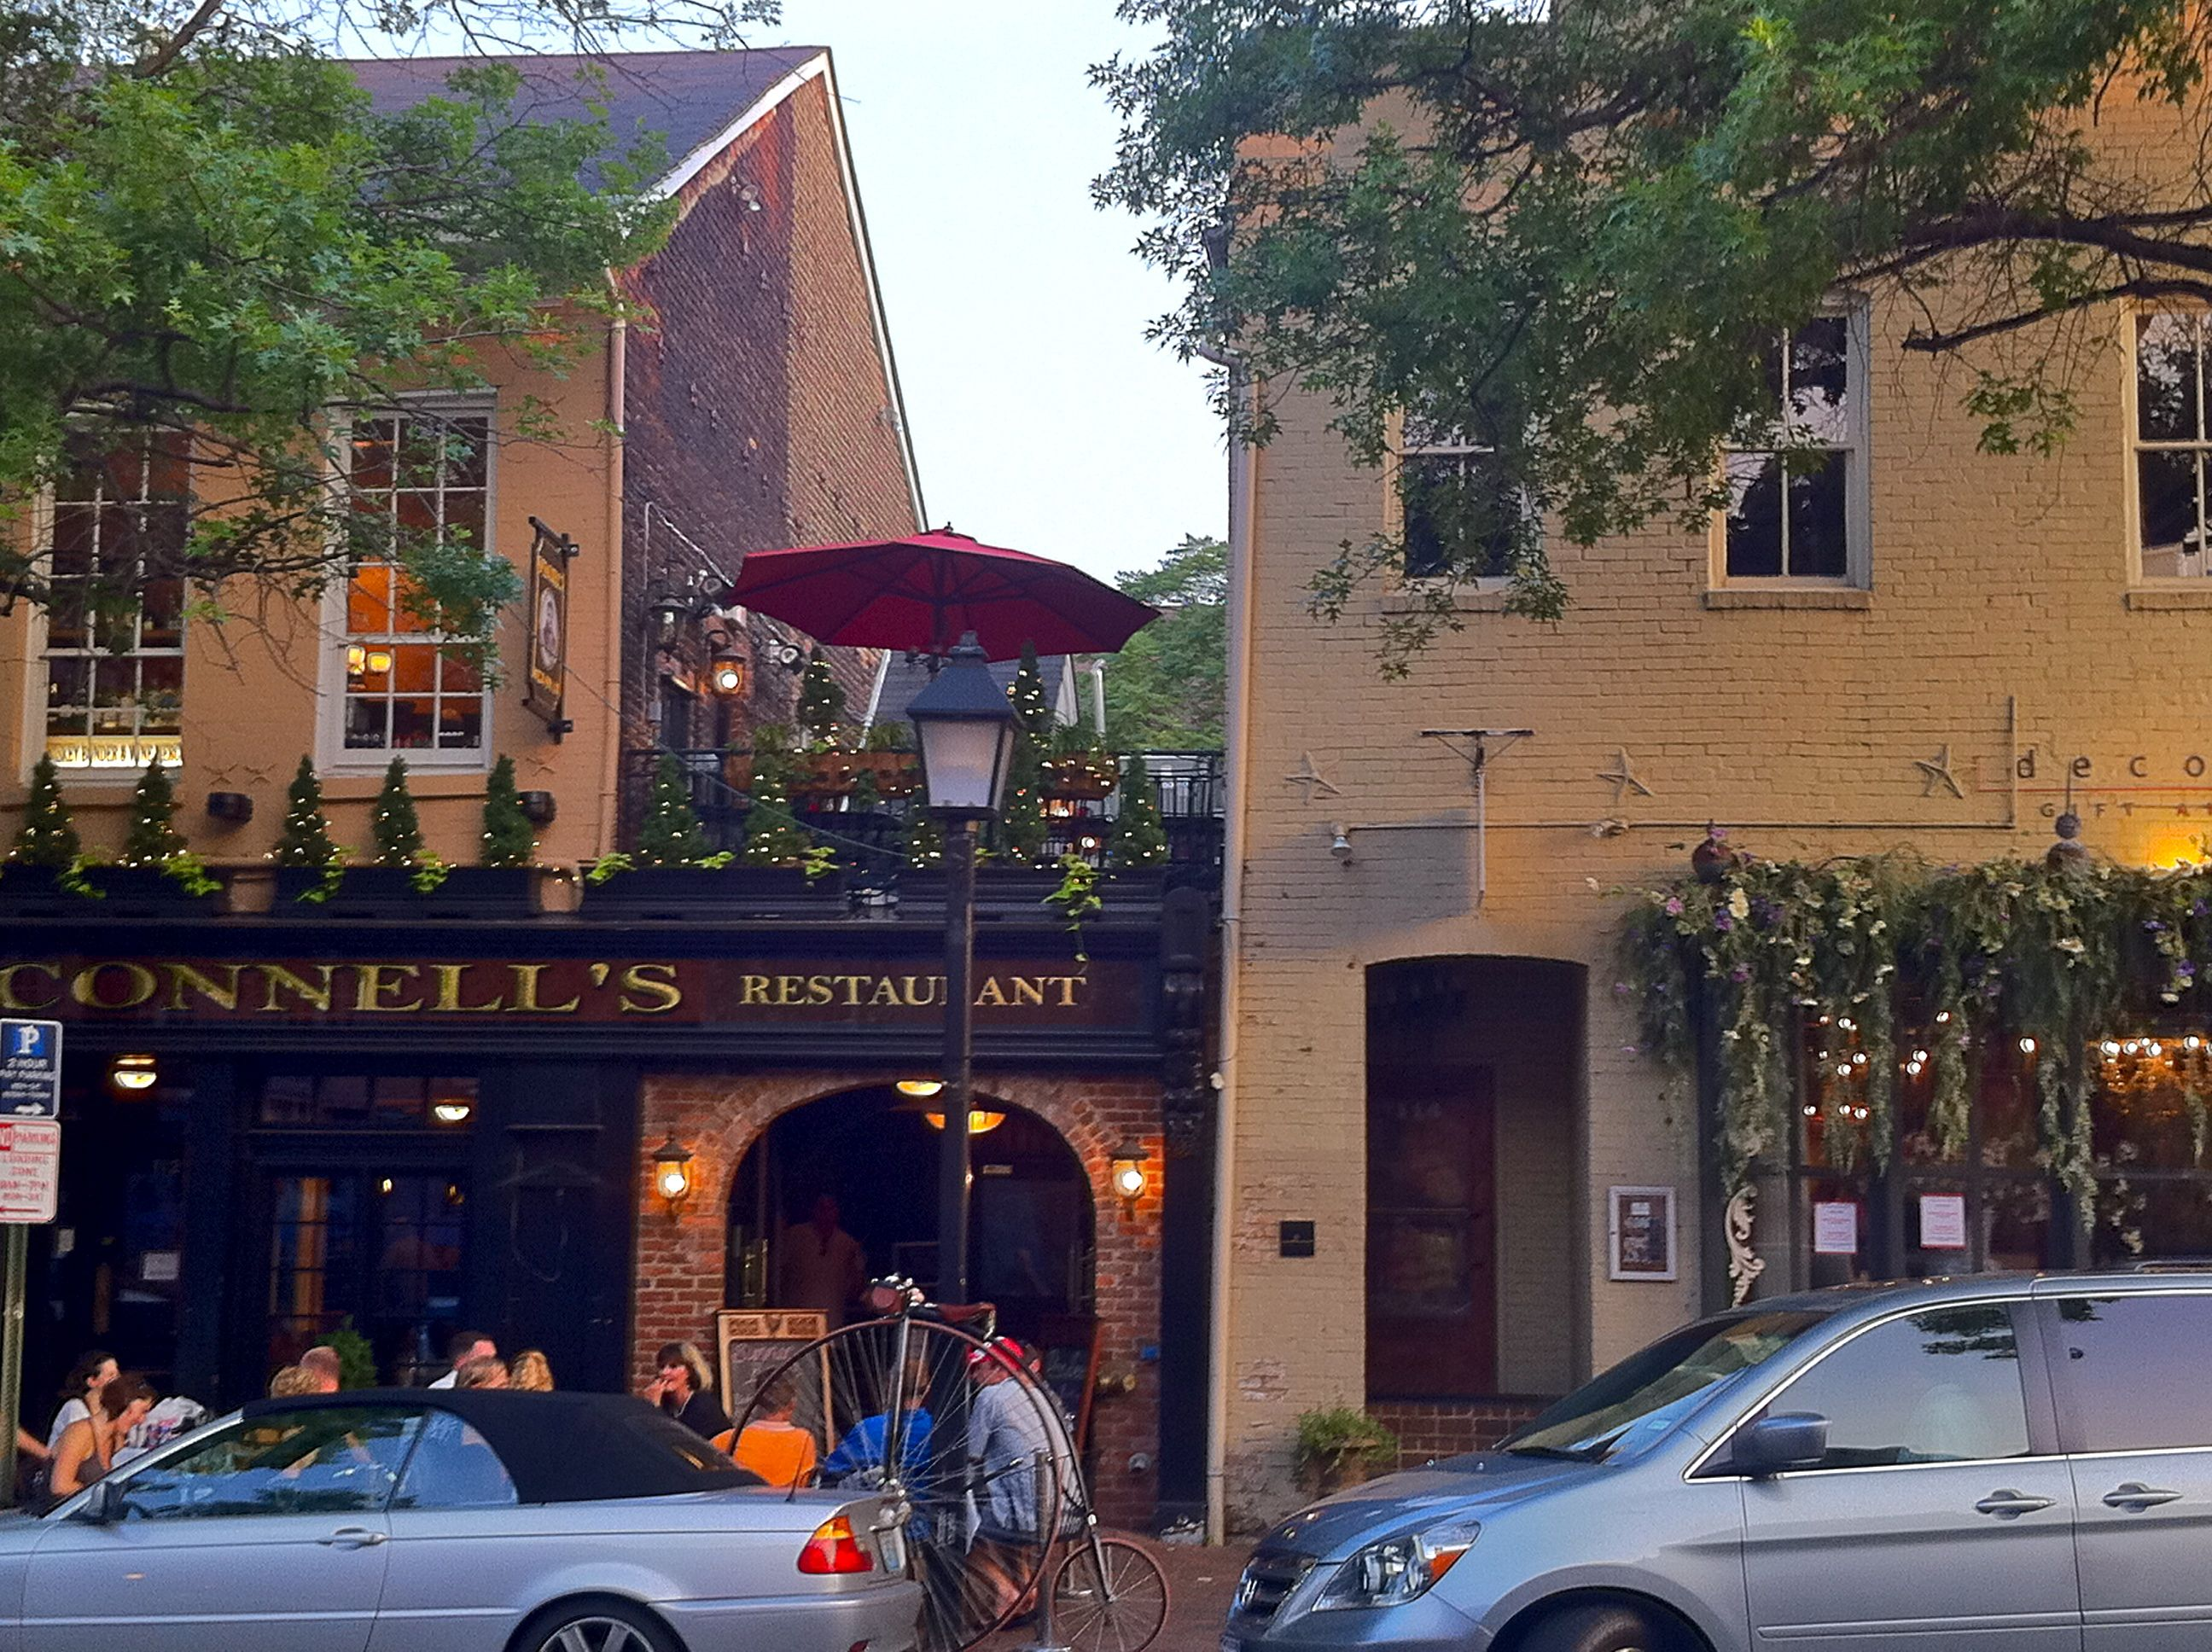 From A Fan Old Town Alexandria Love The Rooftop Bar And Restaurant Seating O Connell S Great Place